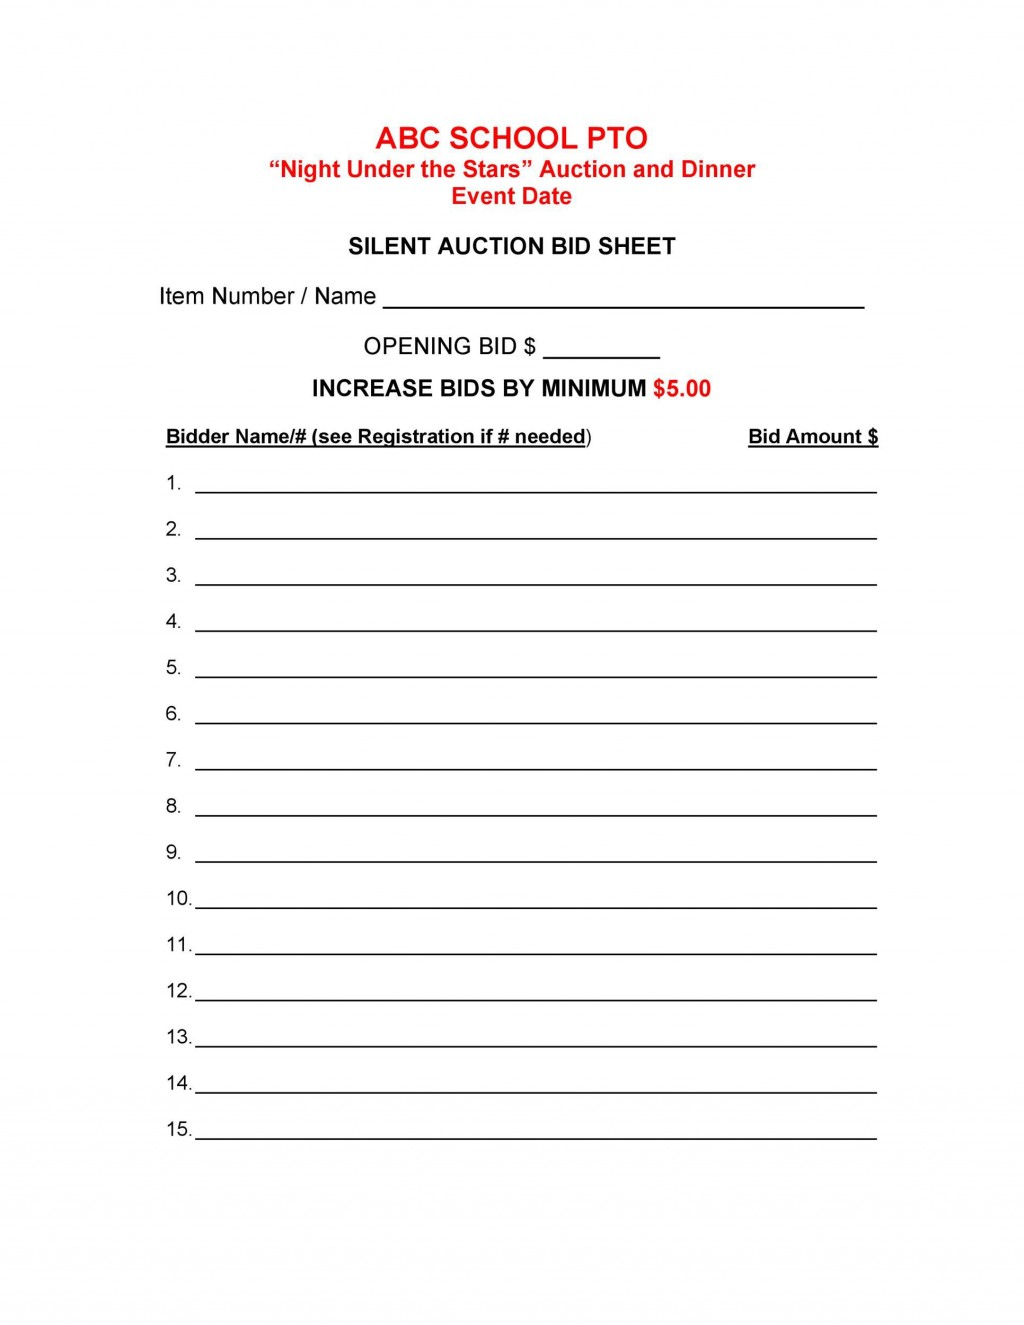 005 Unusual Silent Auction Bid Sheet Template High Def  Free Download Sample Microsoft WordLarge